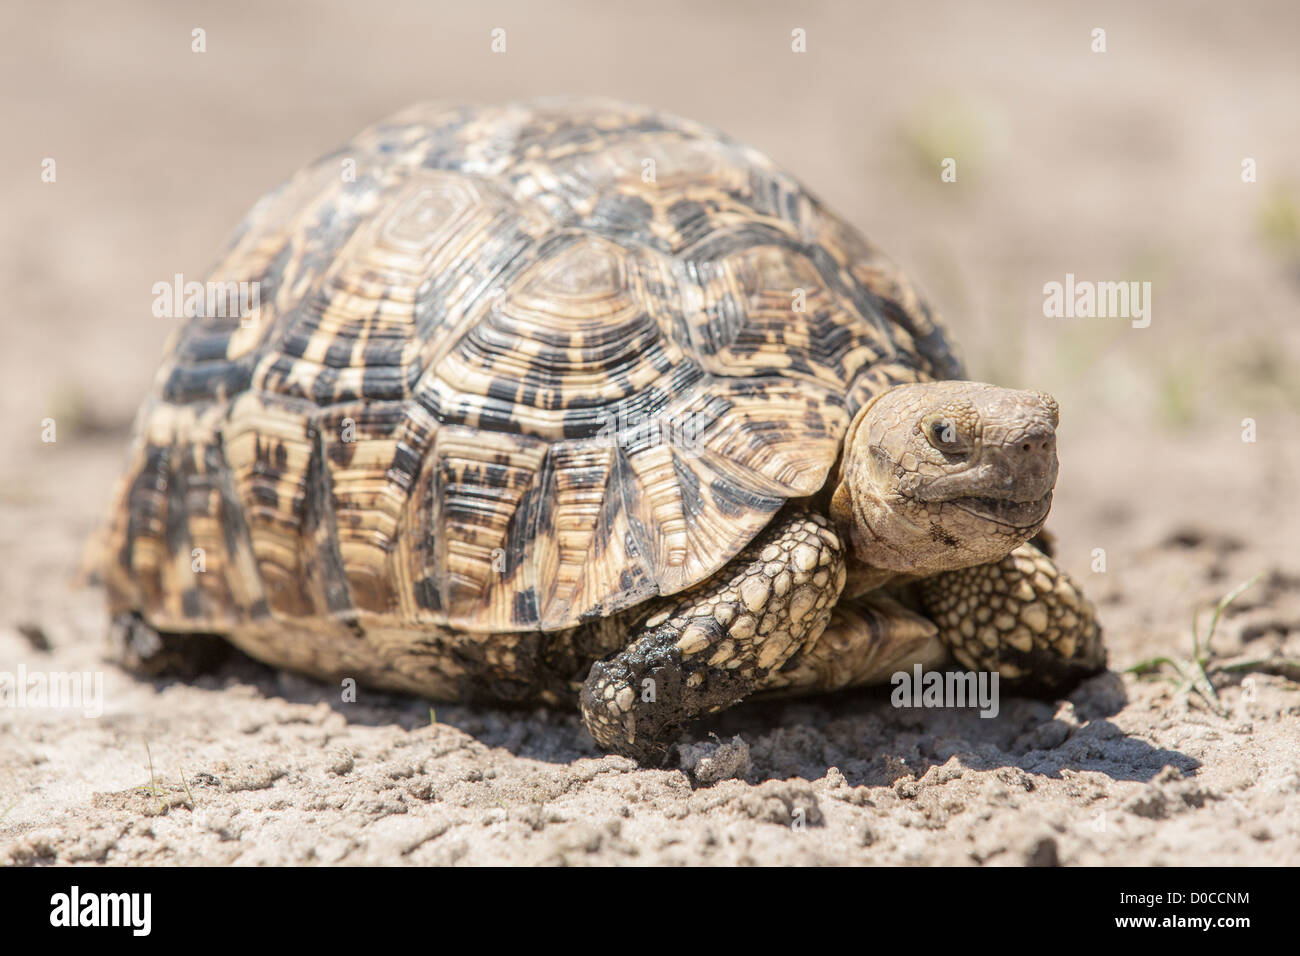 Leopard tortoise (Geochelone pardalis) in the Mamili National Park, Namibia. - Stock Image